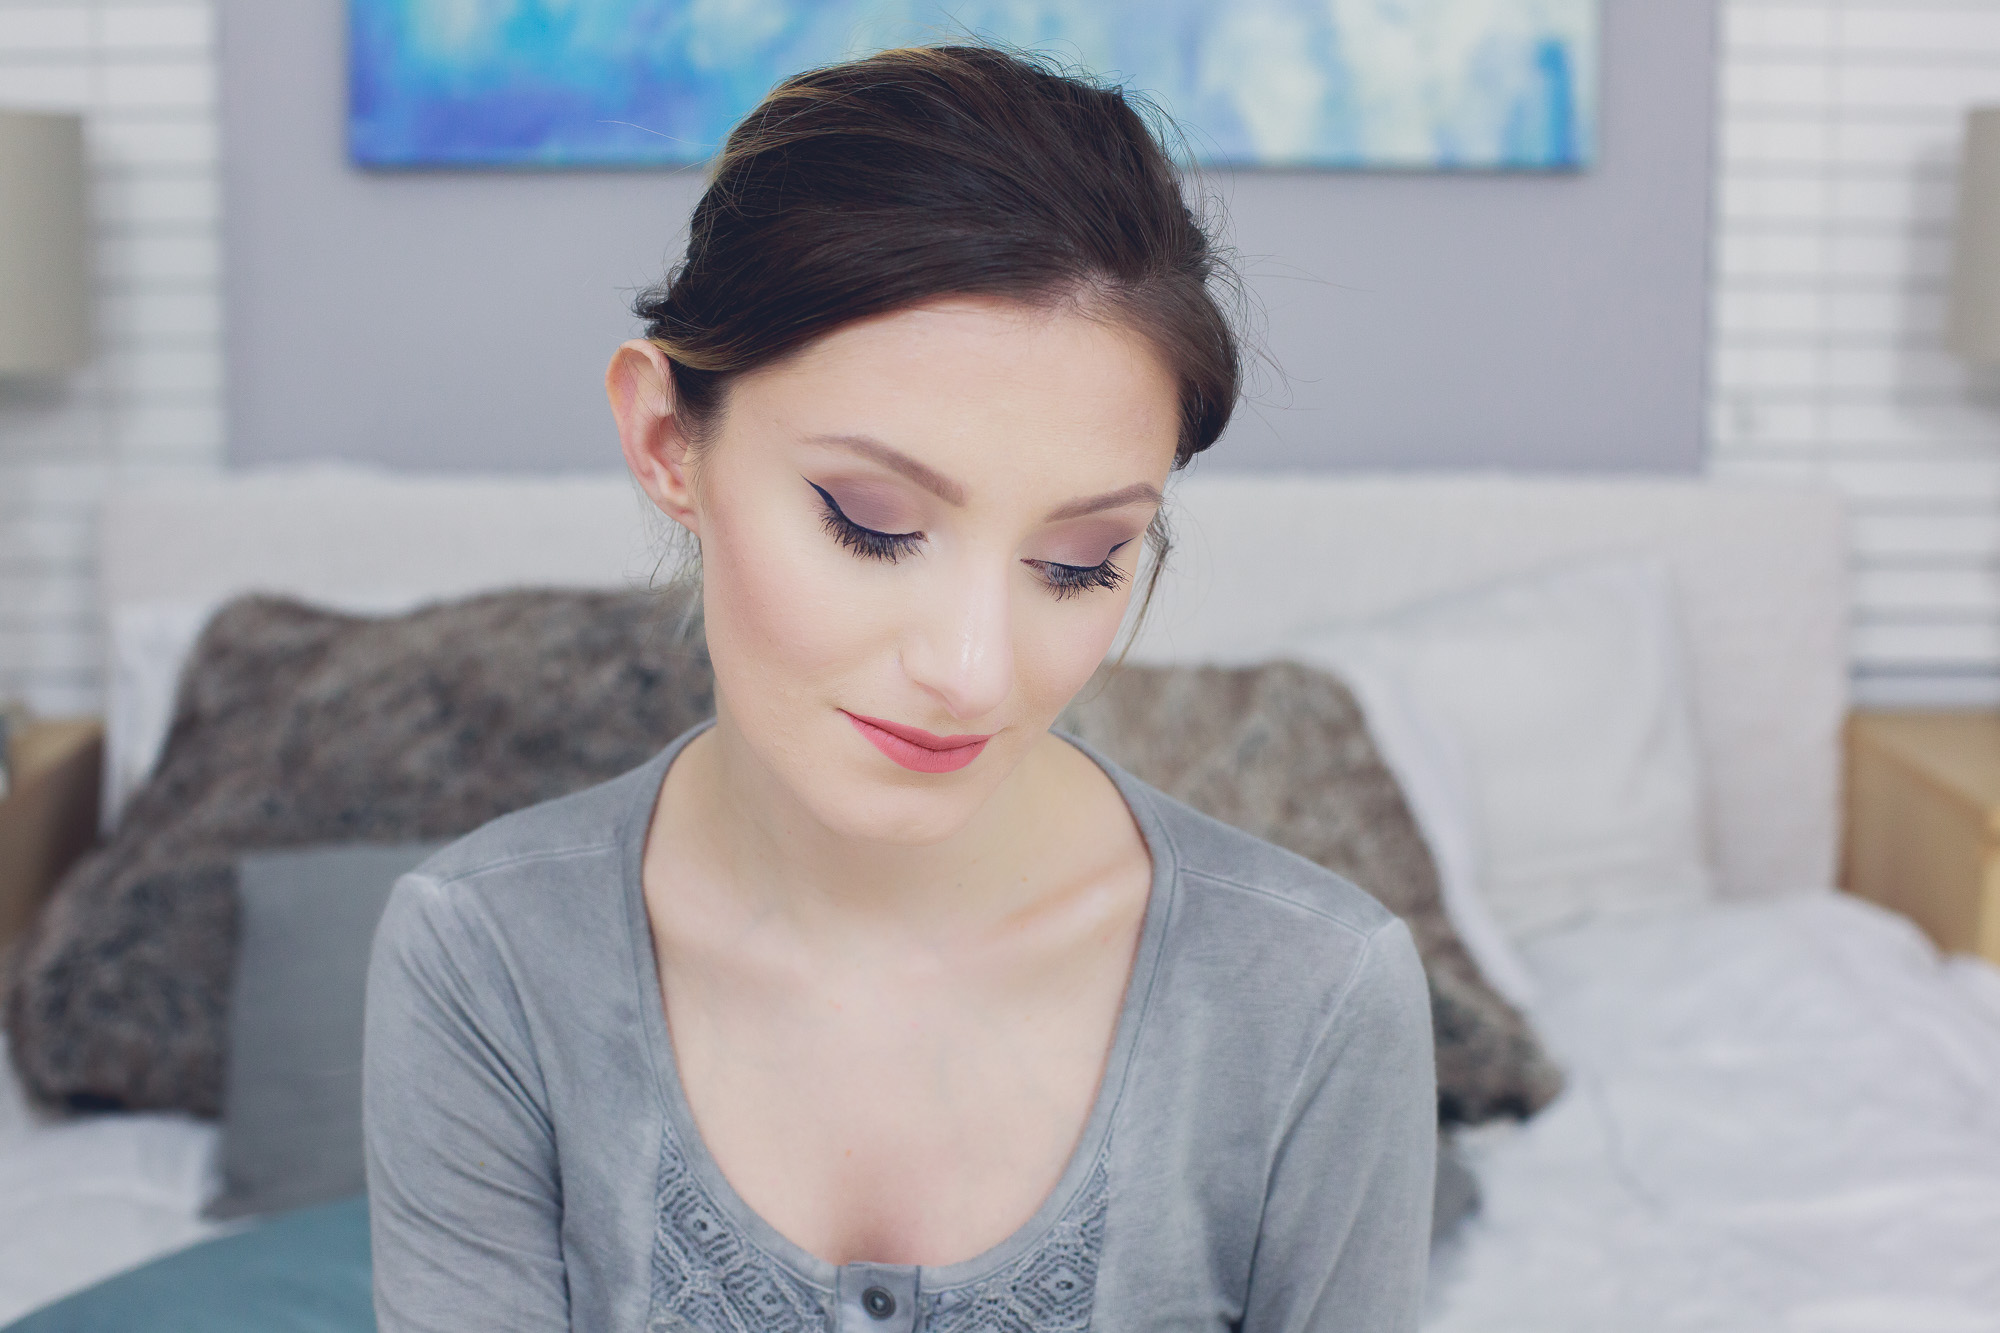 Makeup Tutorial and get ready with me bye Jessica Linn on Youtube and the fashion and lifestyle blog Linn Style